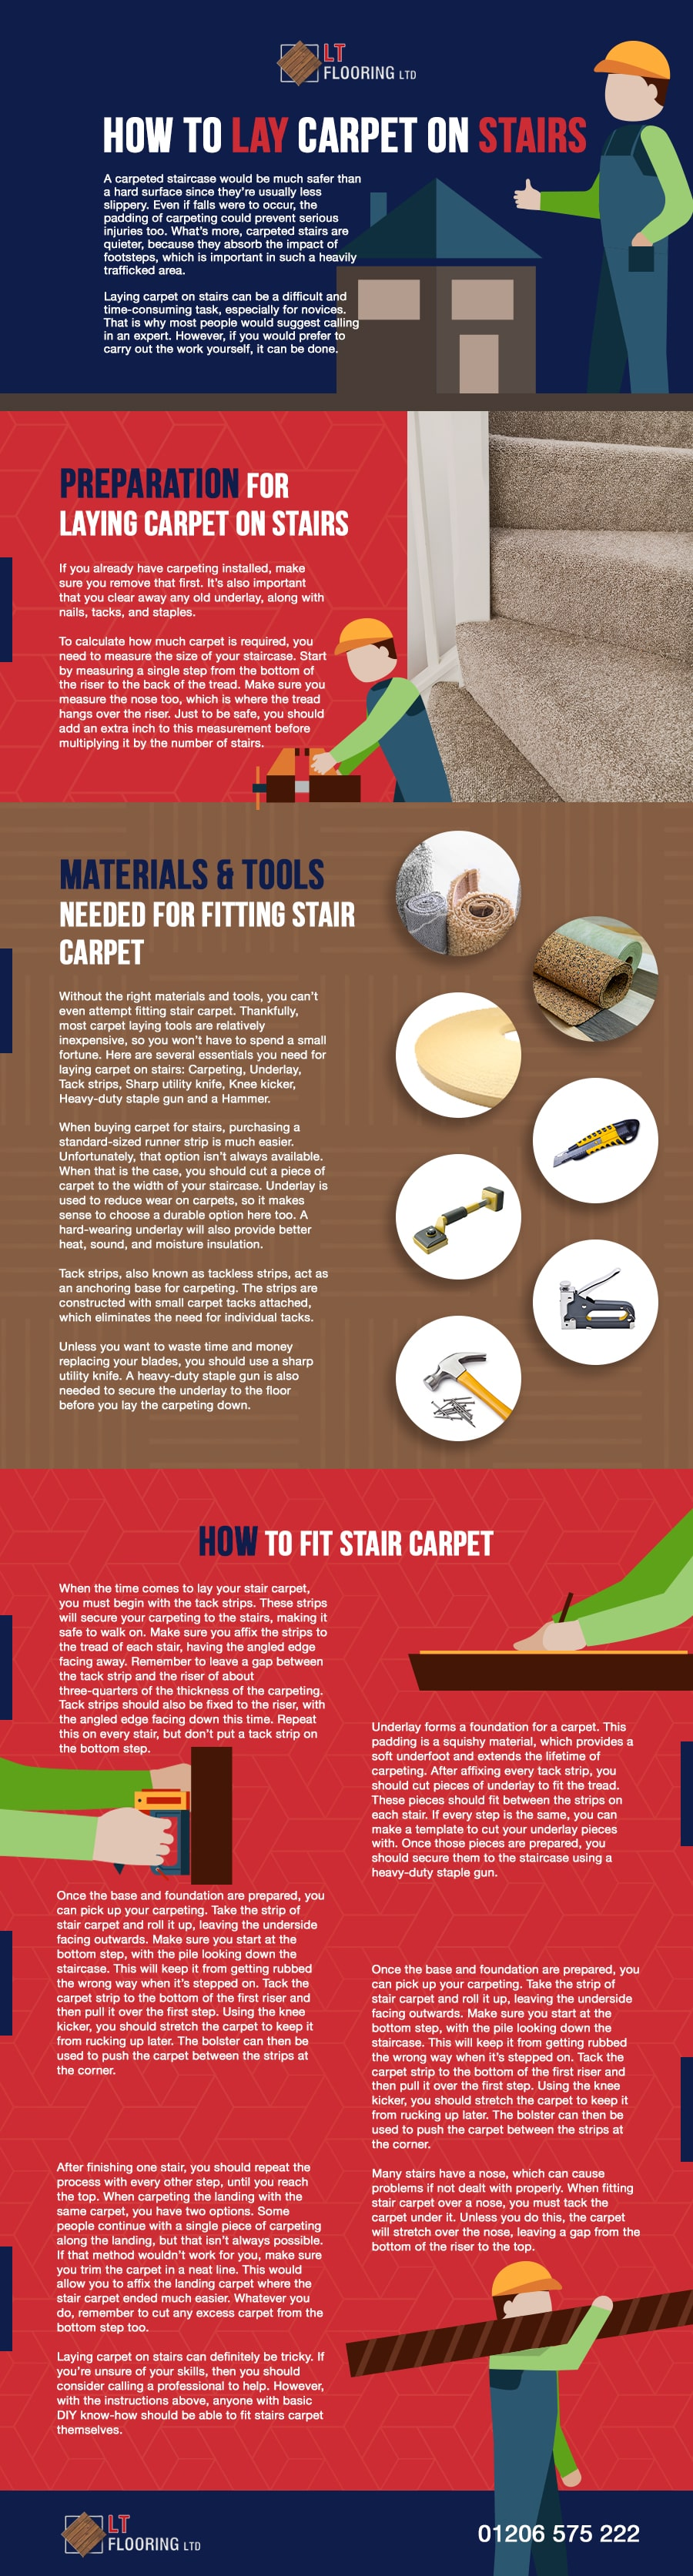 how to lay carpet infographic